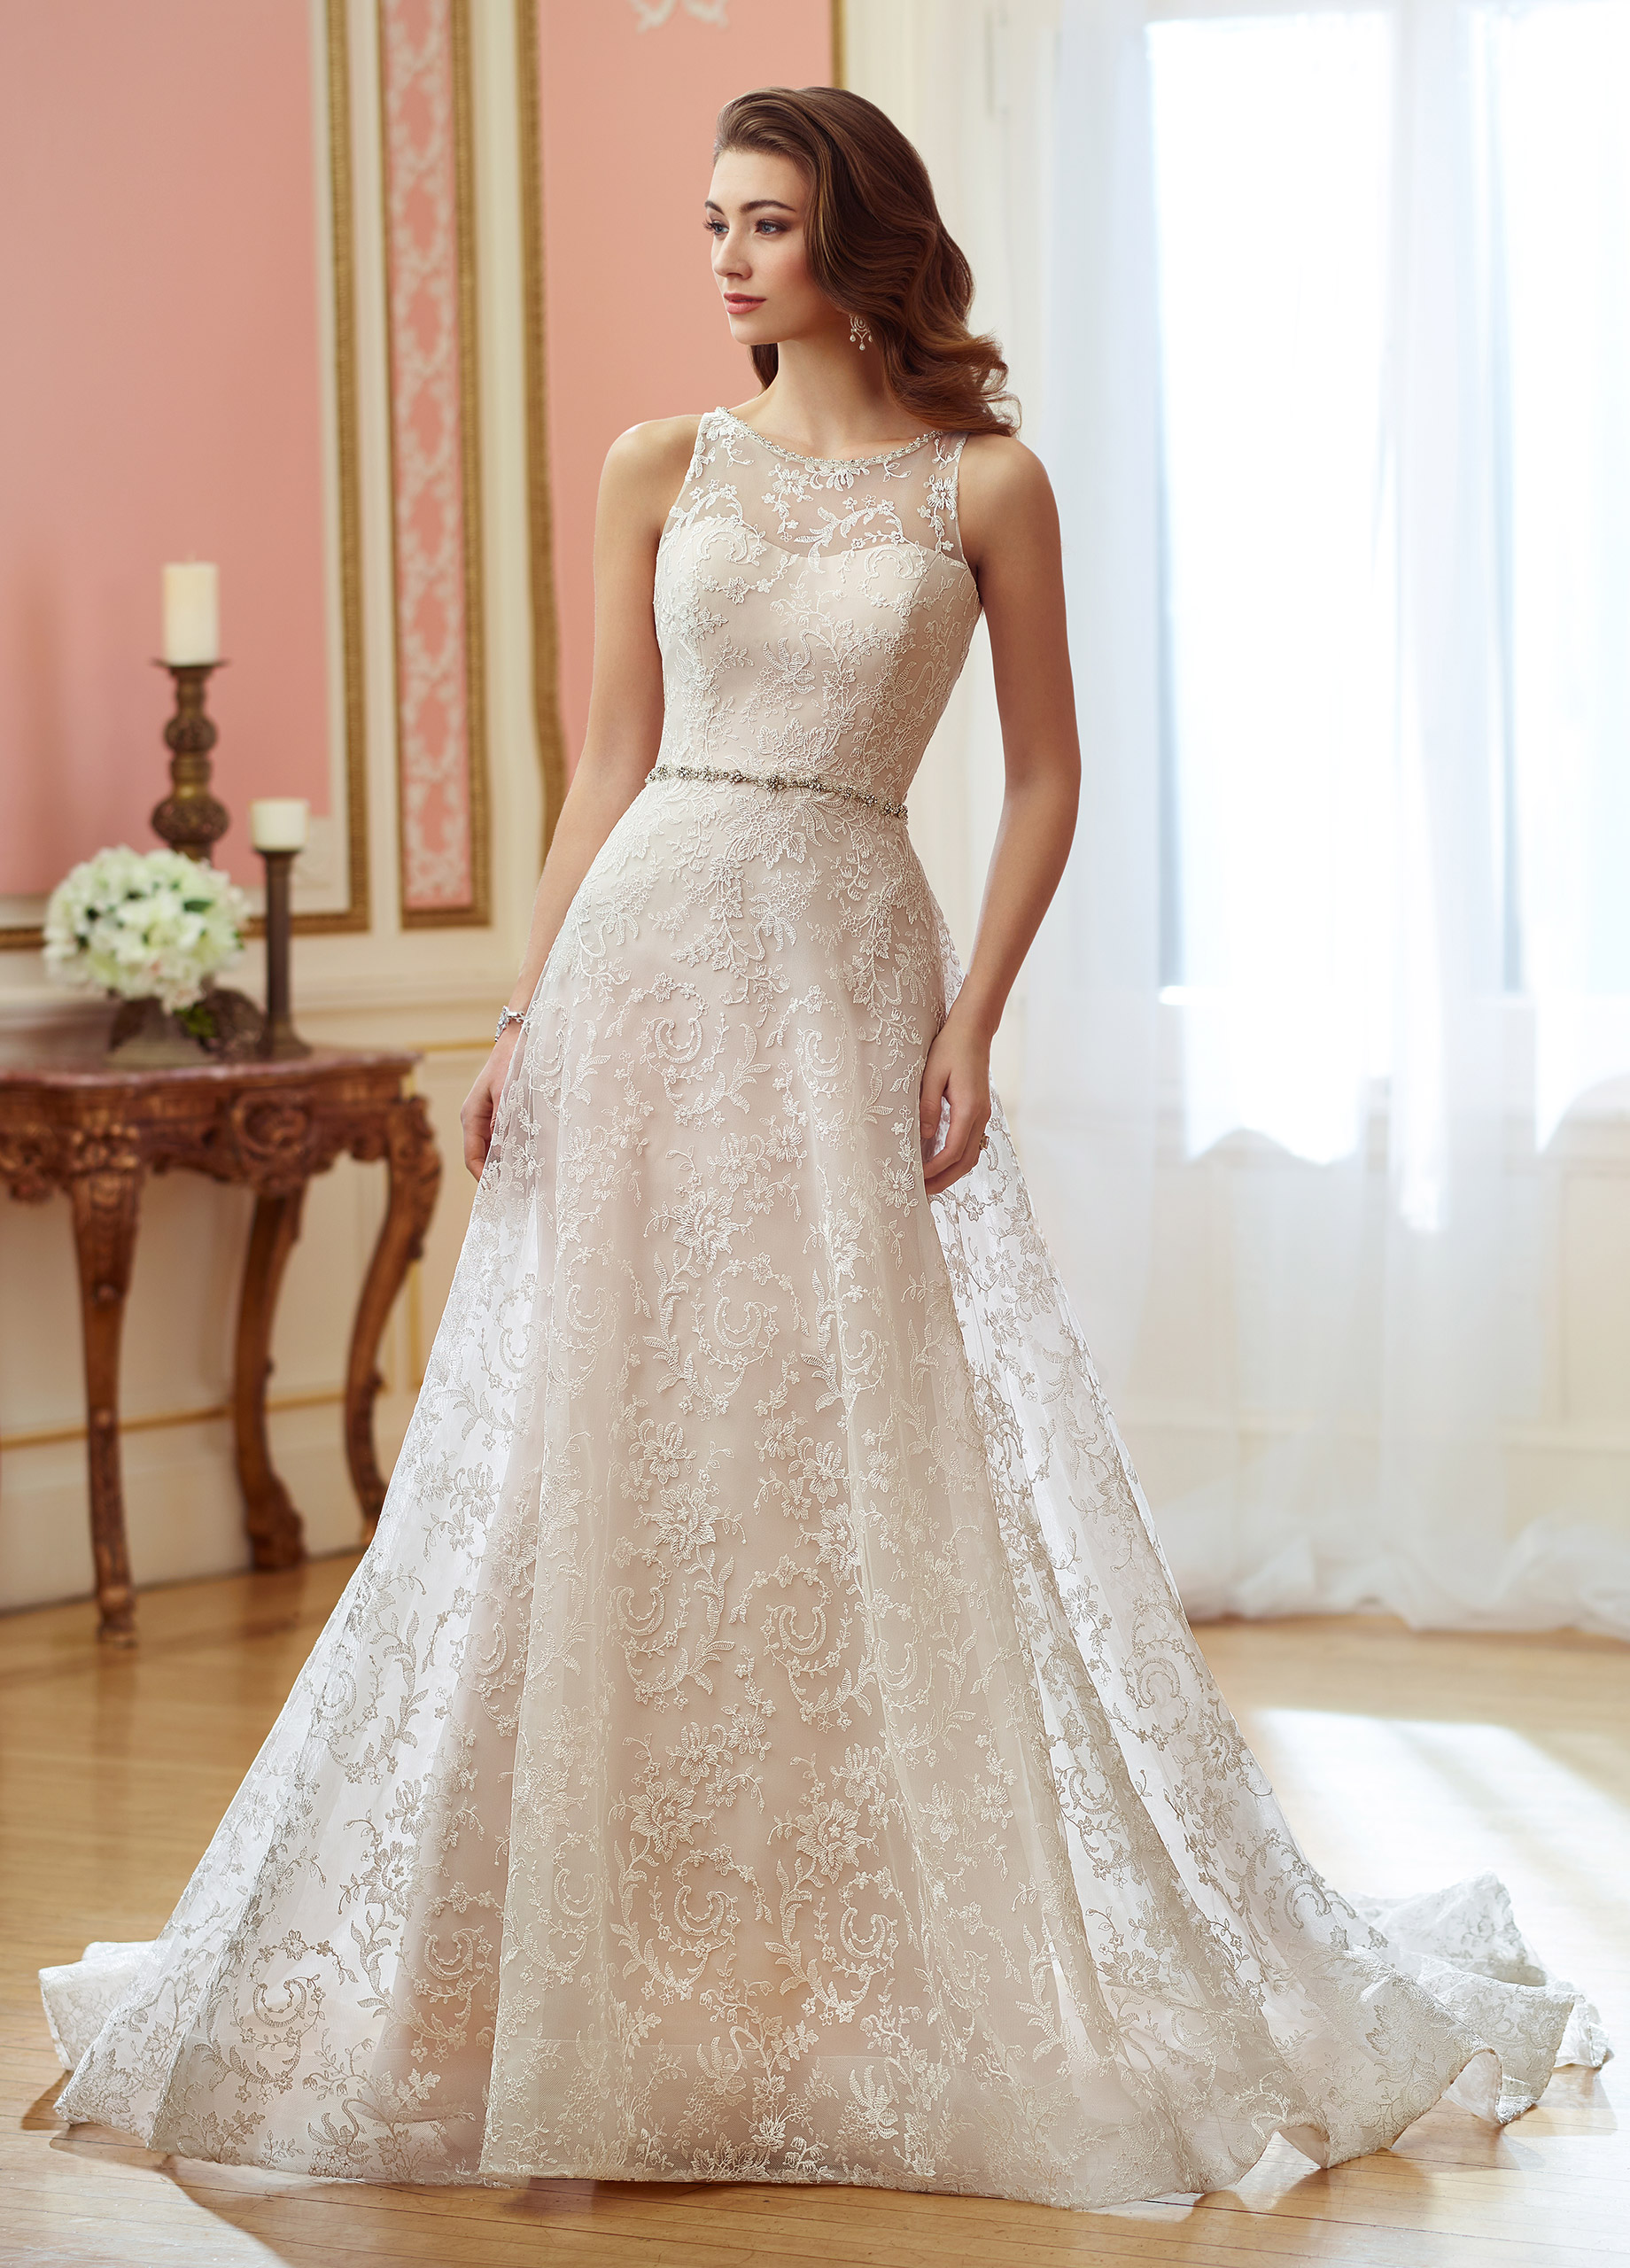 656c7c465a9d20 Sleeveless organza and embroidered allover Schiffli lace over satin slim  A-line gown with hand-beaded illusion jewel neckline, soft sweetheart  bodice, ...